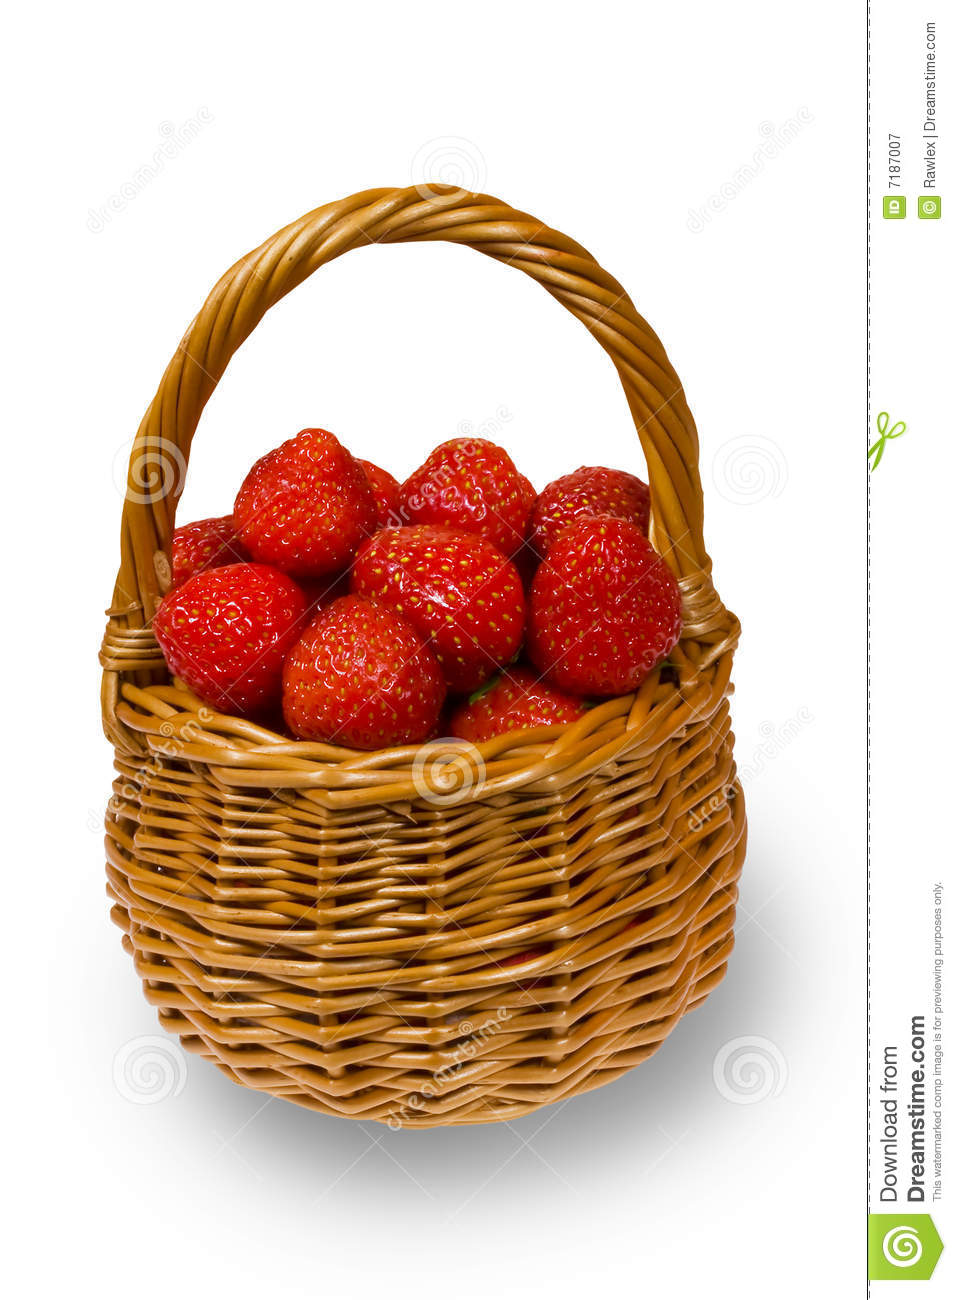 Basket Full Of Strawberries Royalty Free Stock Photography ...